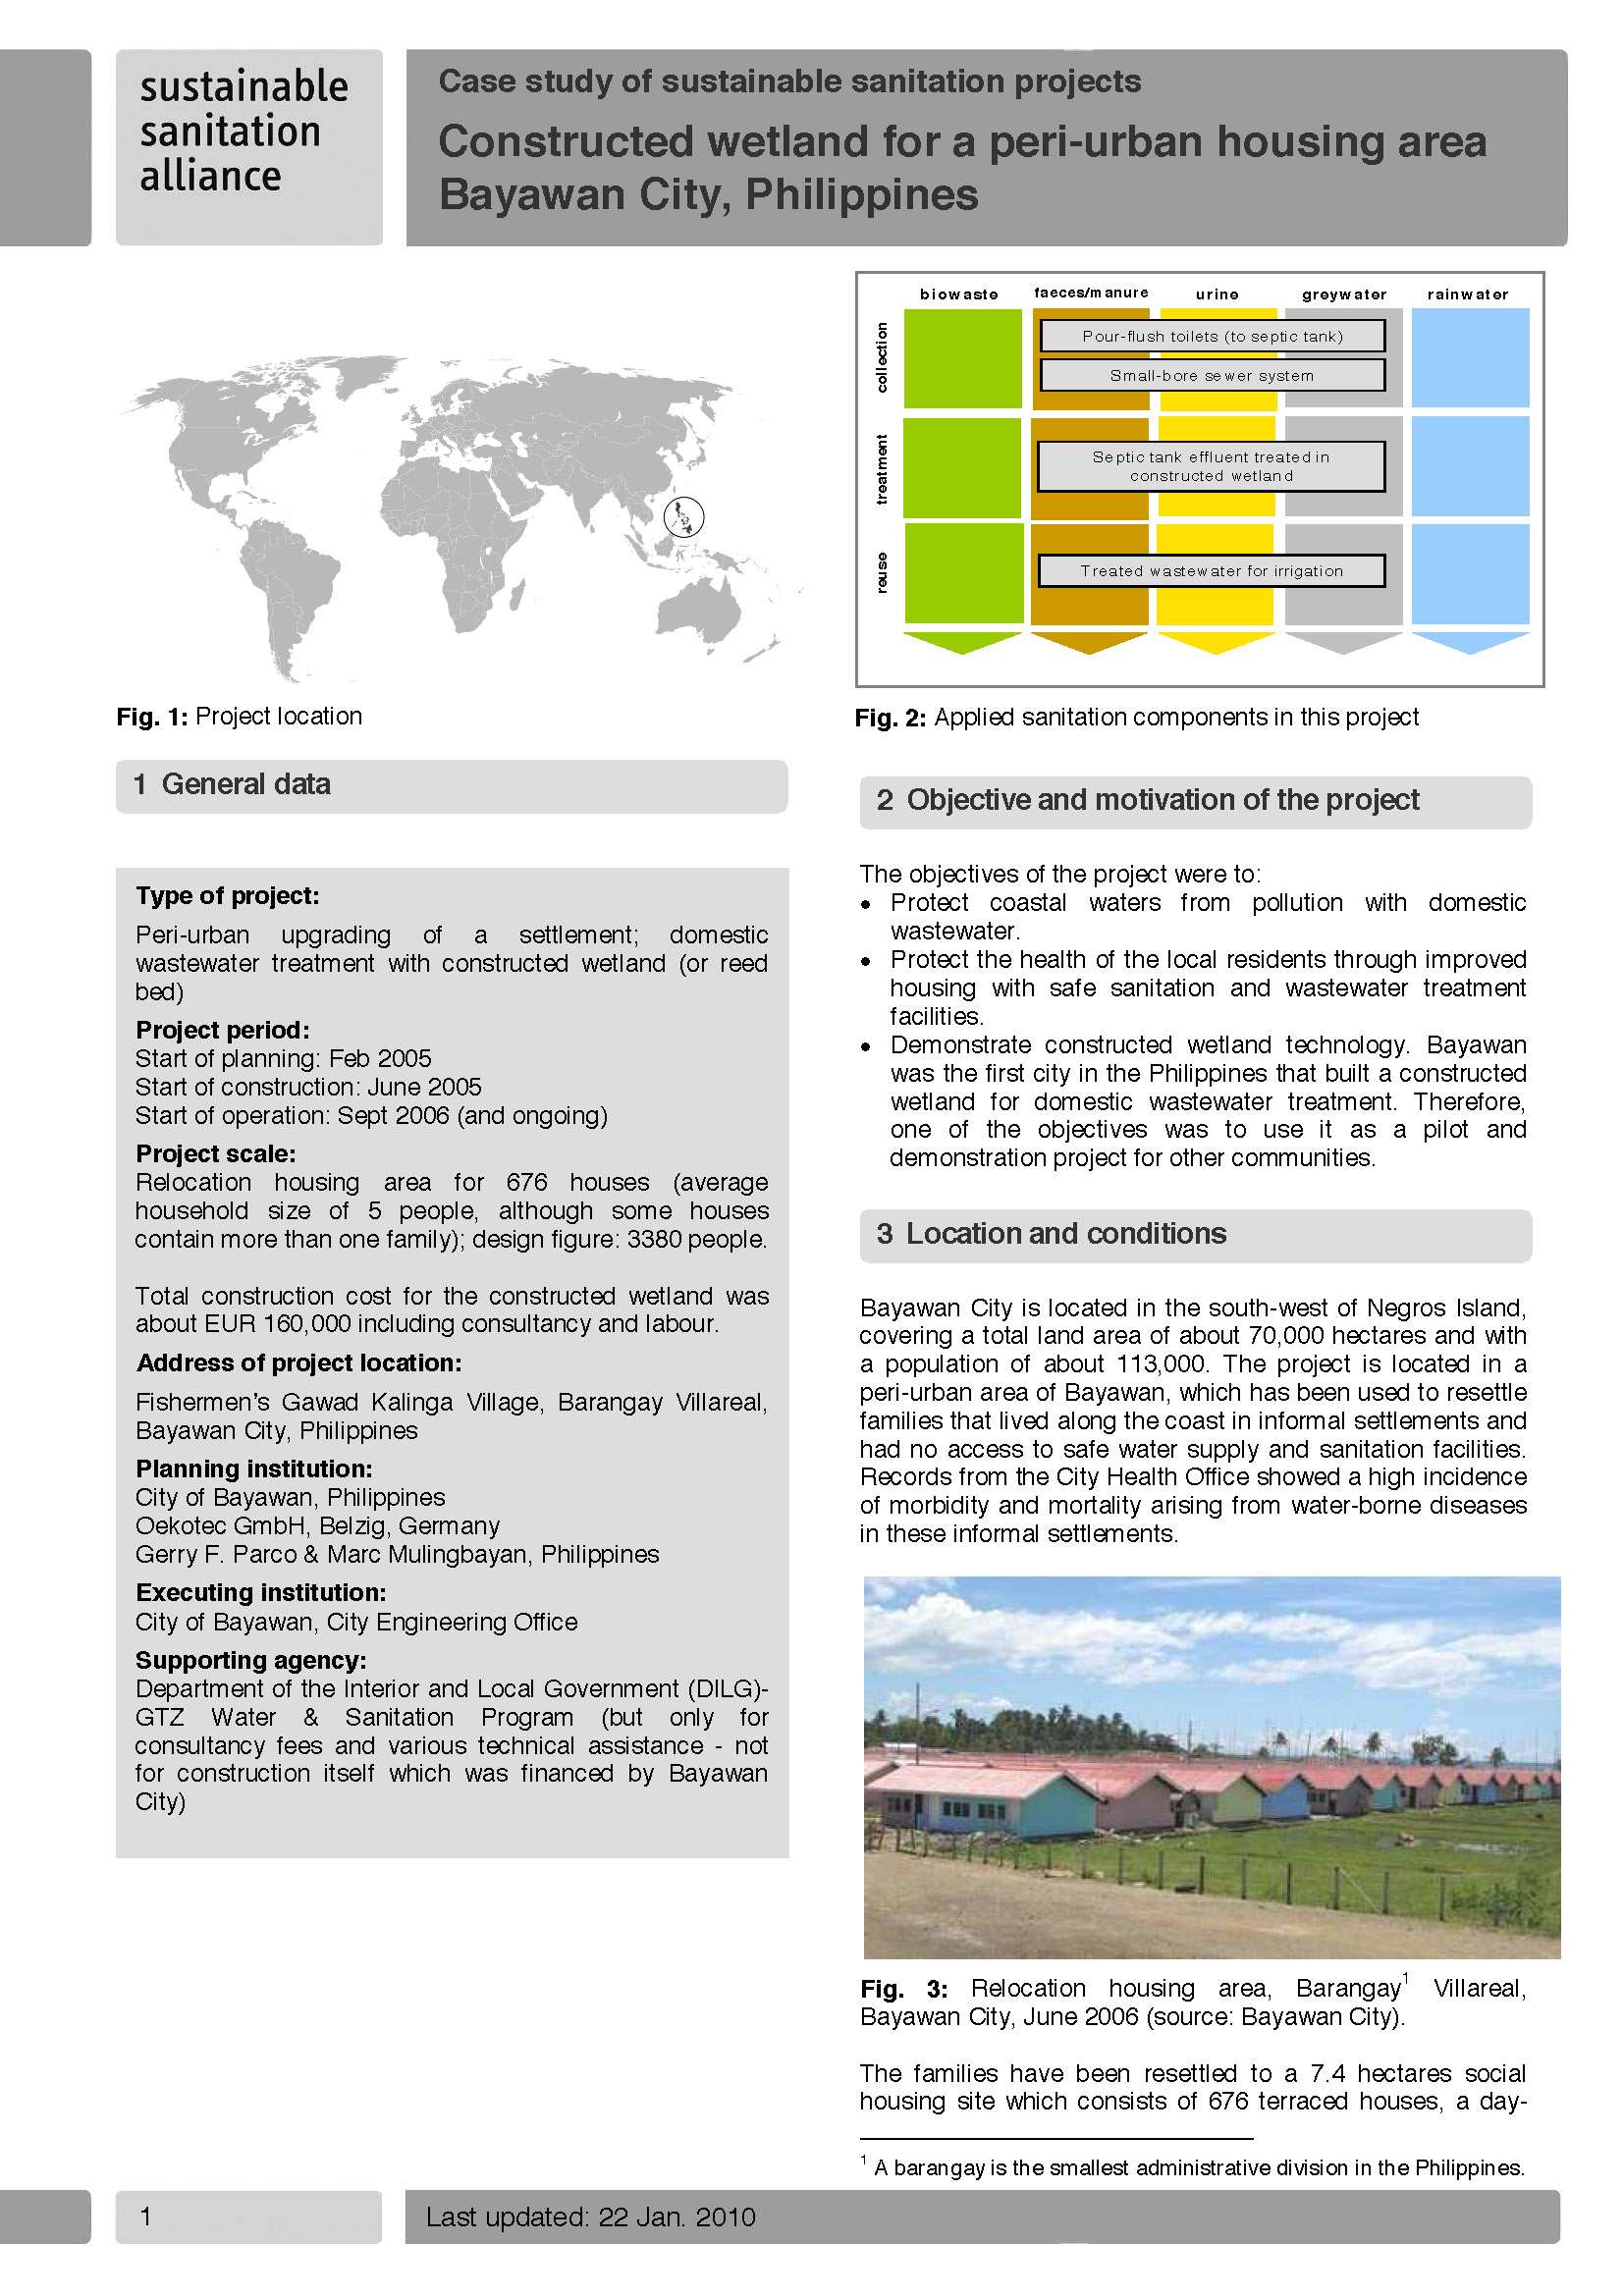 Constructed wetland for a peri-urban housing area Bayawan City, Philippines - Case studies